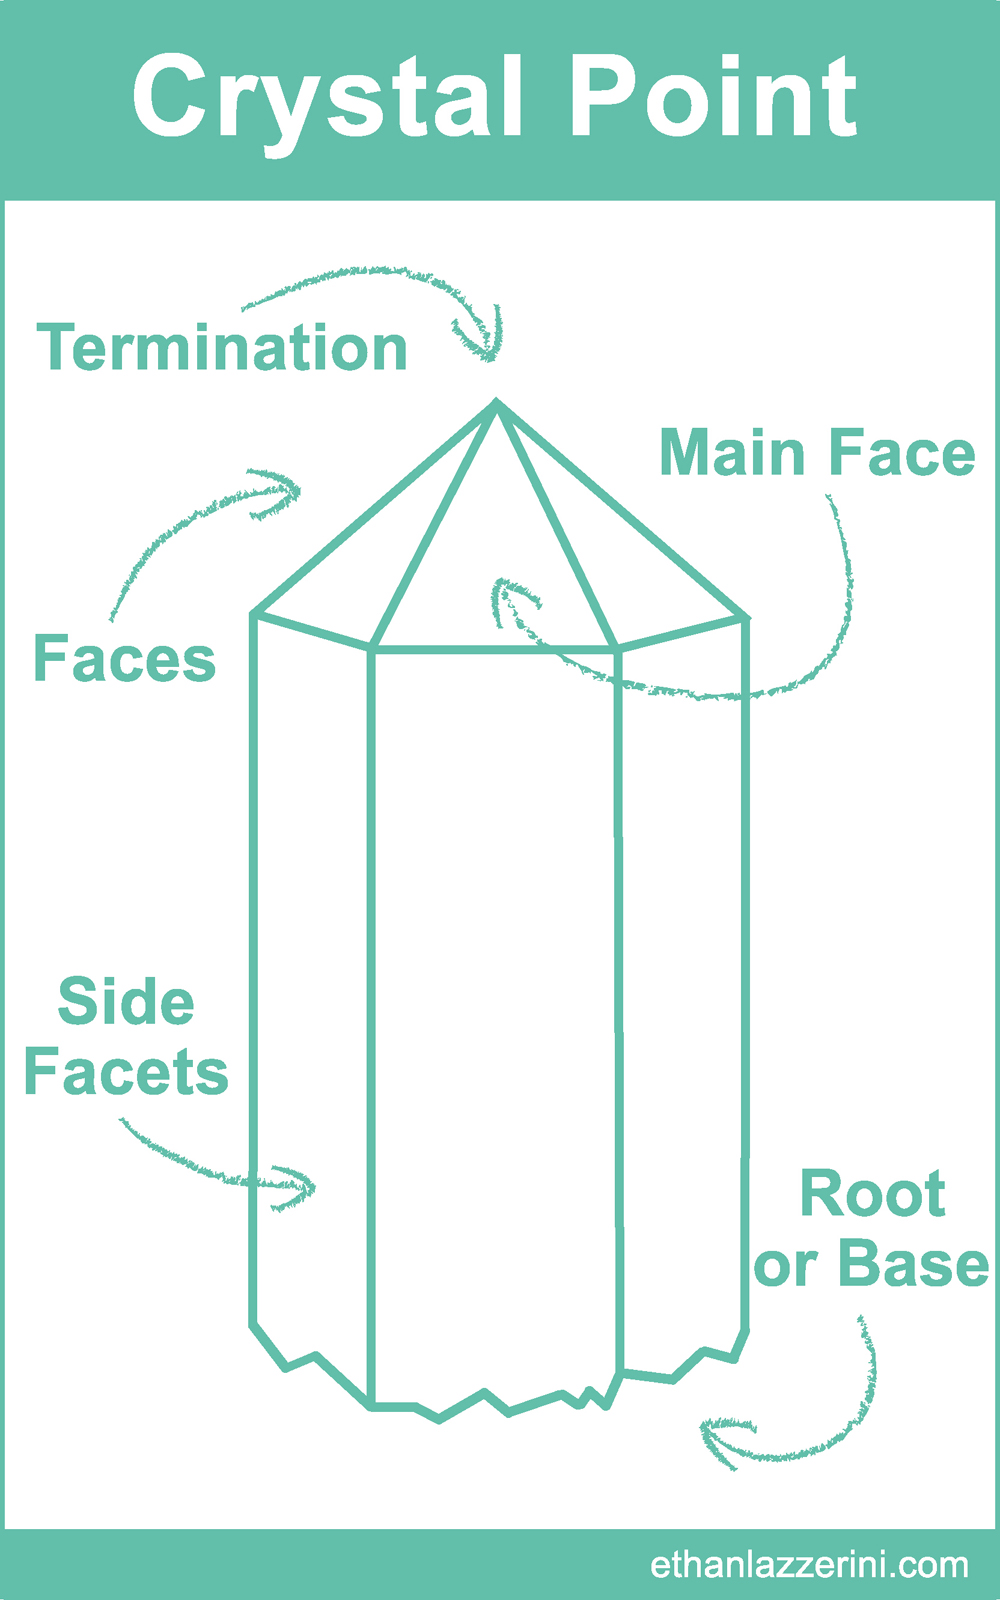 Guide to Side Facets Vs Faces on Crystal Points